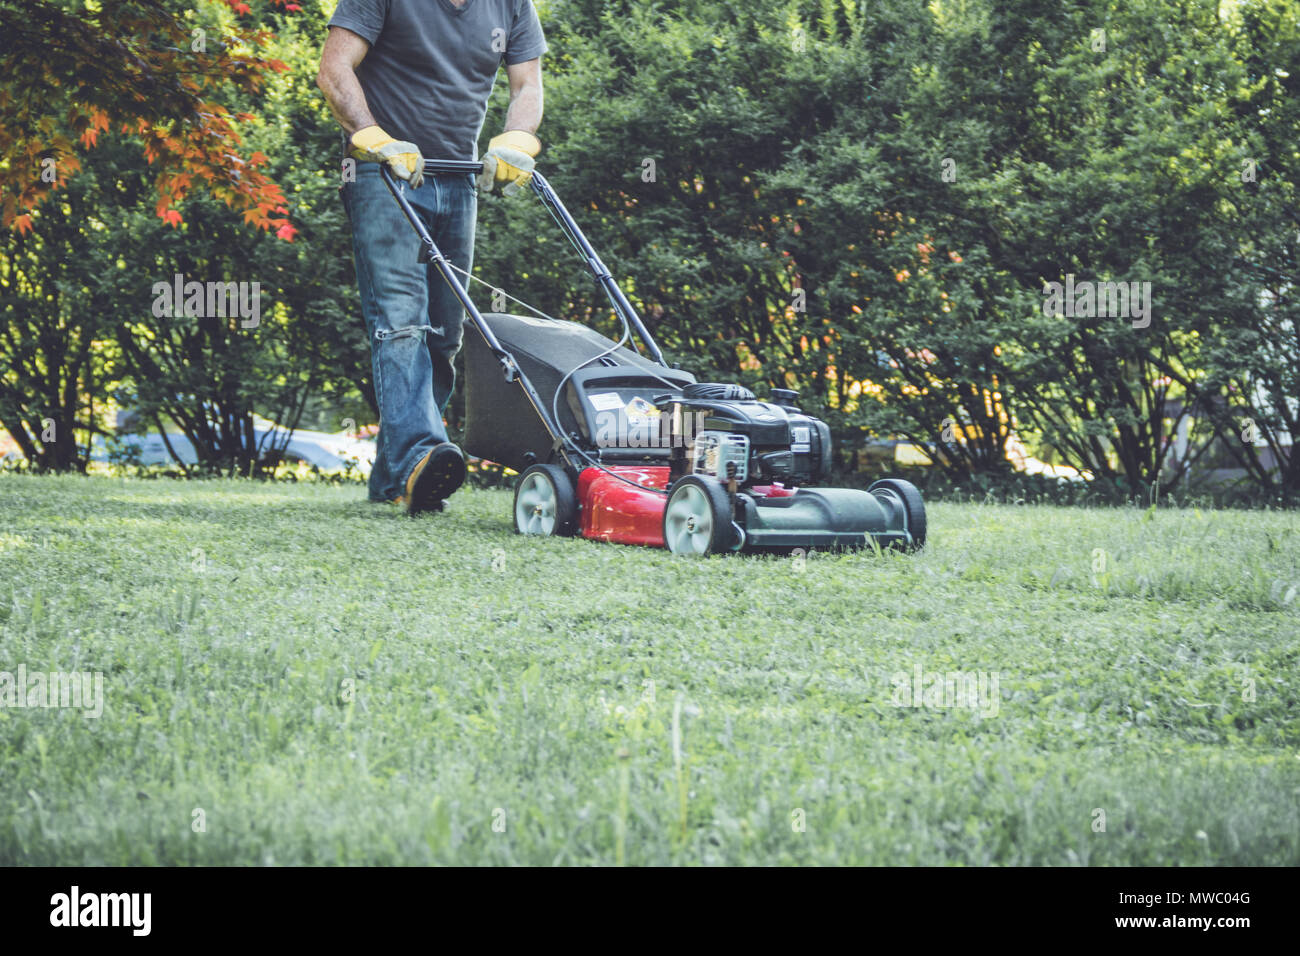 Vintage Lawn Mower Stock Photos & Vintage Lawn Mower Stock Images